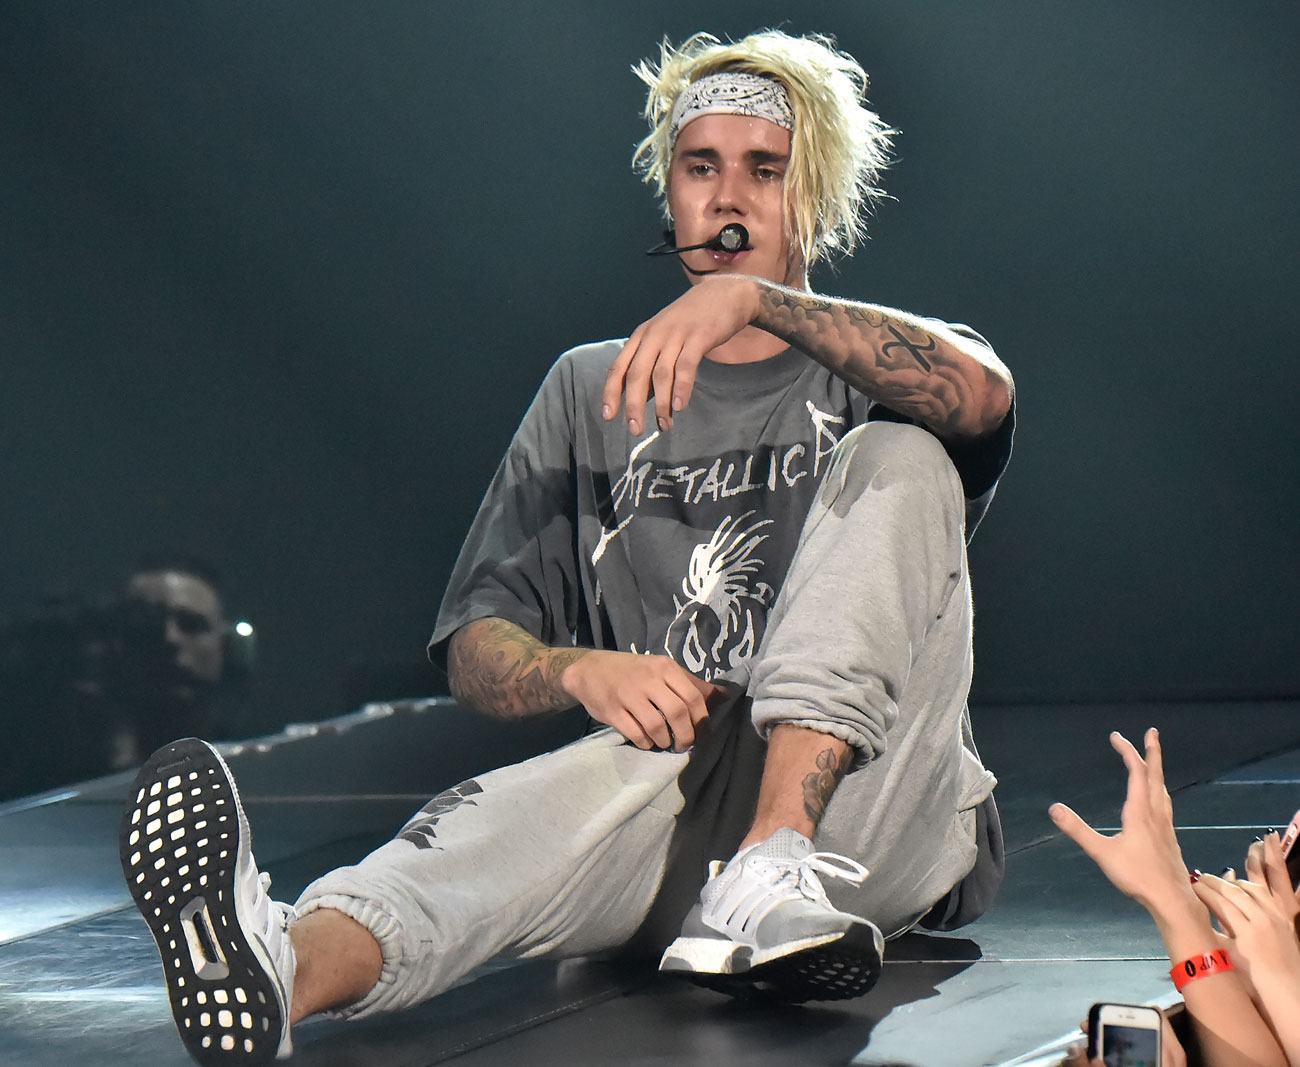 Justin Bieber has canceled his tour VIPs